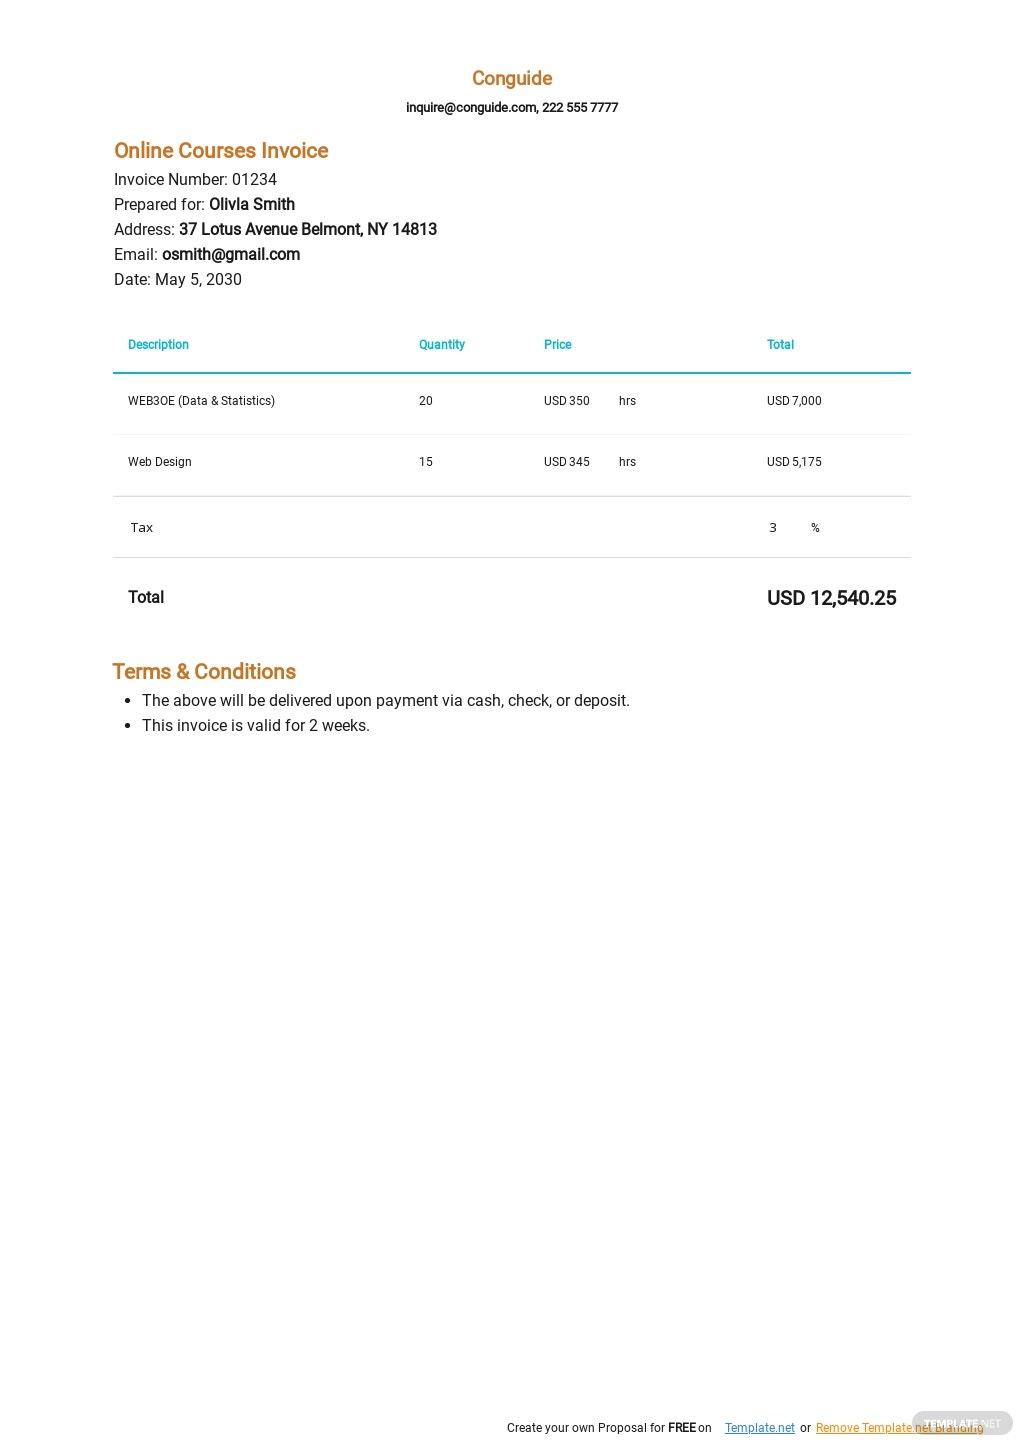 Online Courses Invoice Template.jpe